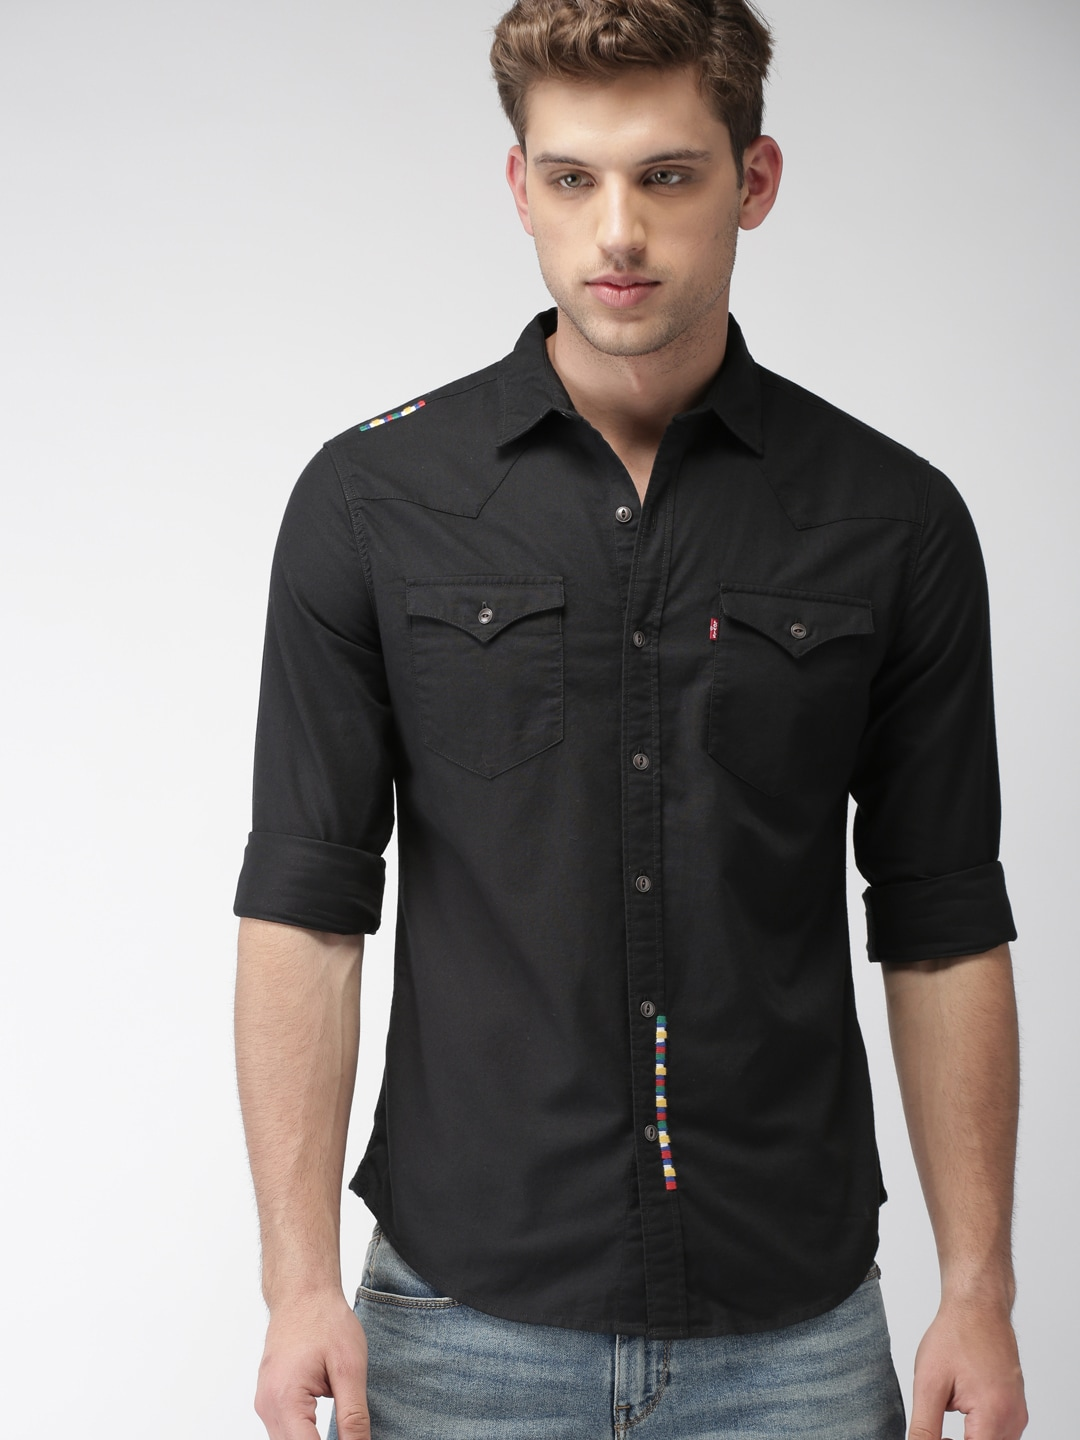 05095d2df1 Levis Denim Shirts - Buy Levis Denim Shirts online in India